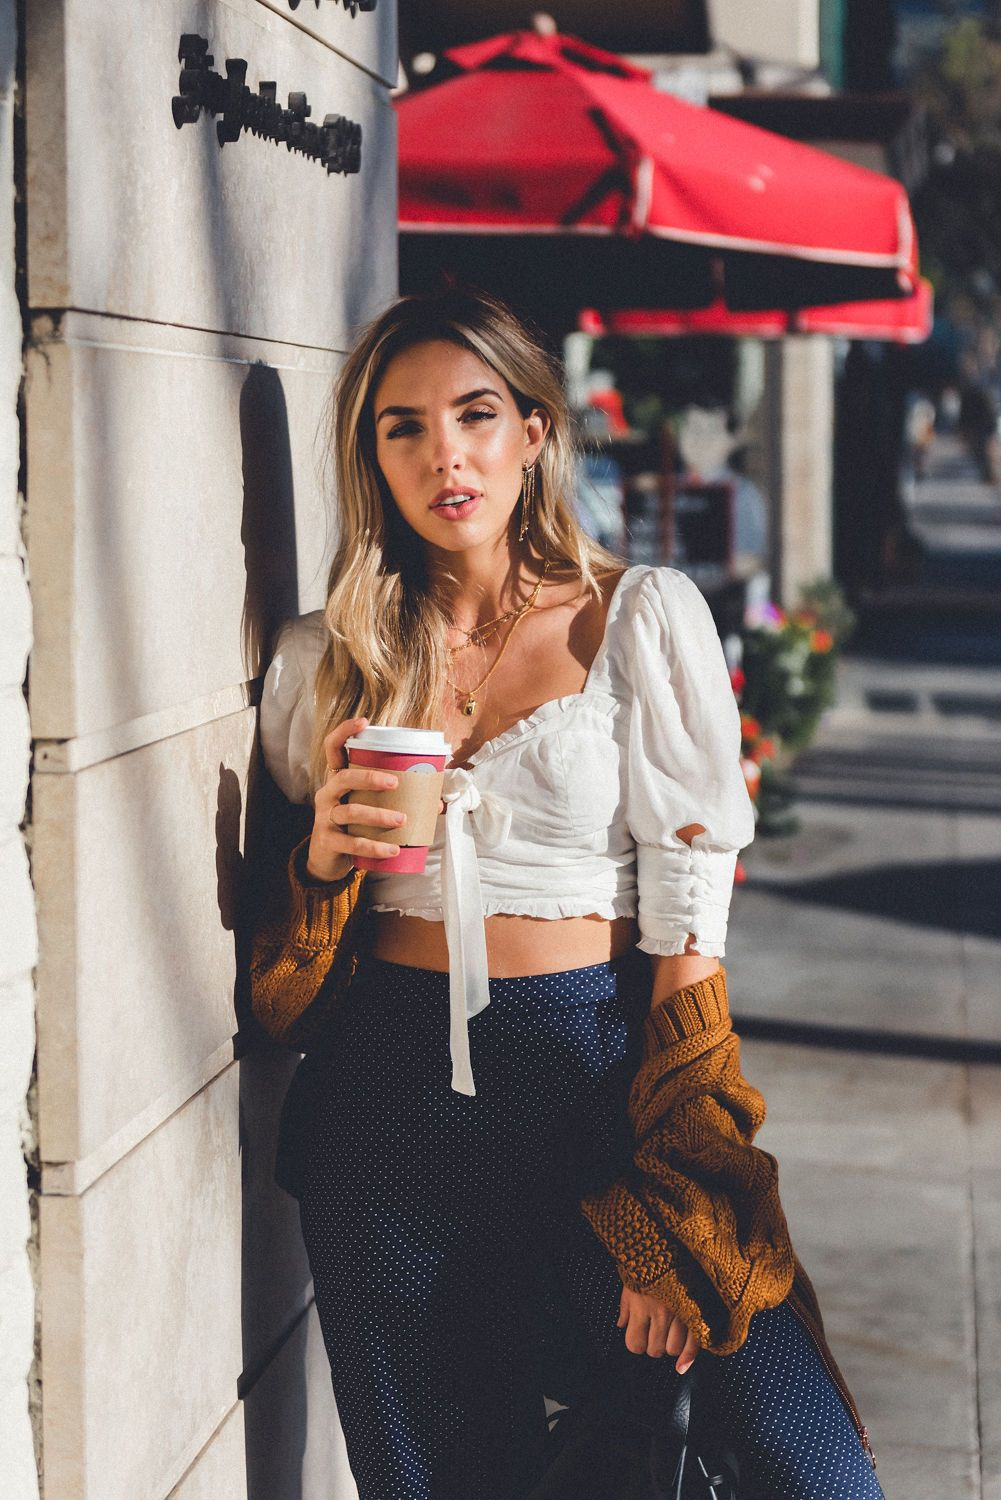 The 90 S Trend That S Huge In 2019 Style Report Magazine Styling Wide Leg Pants Style Fashion